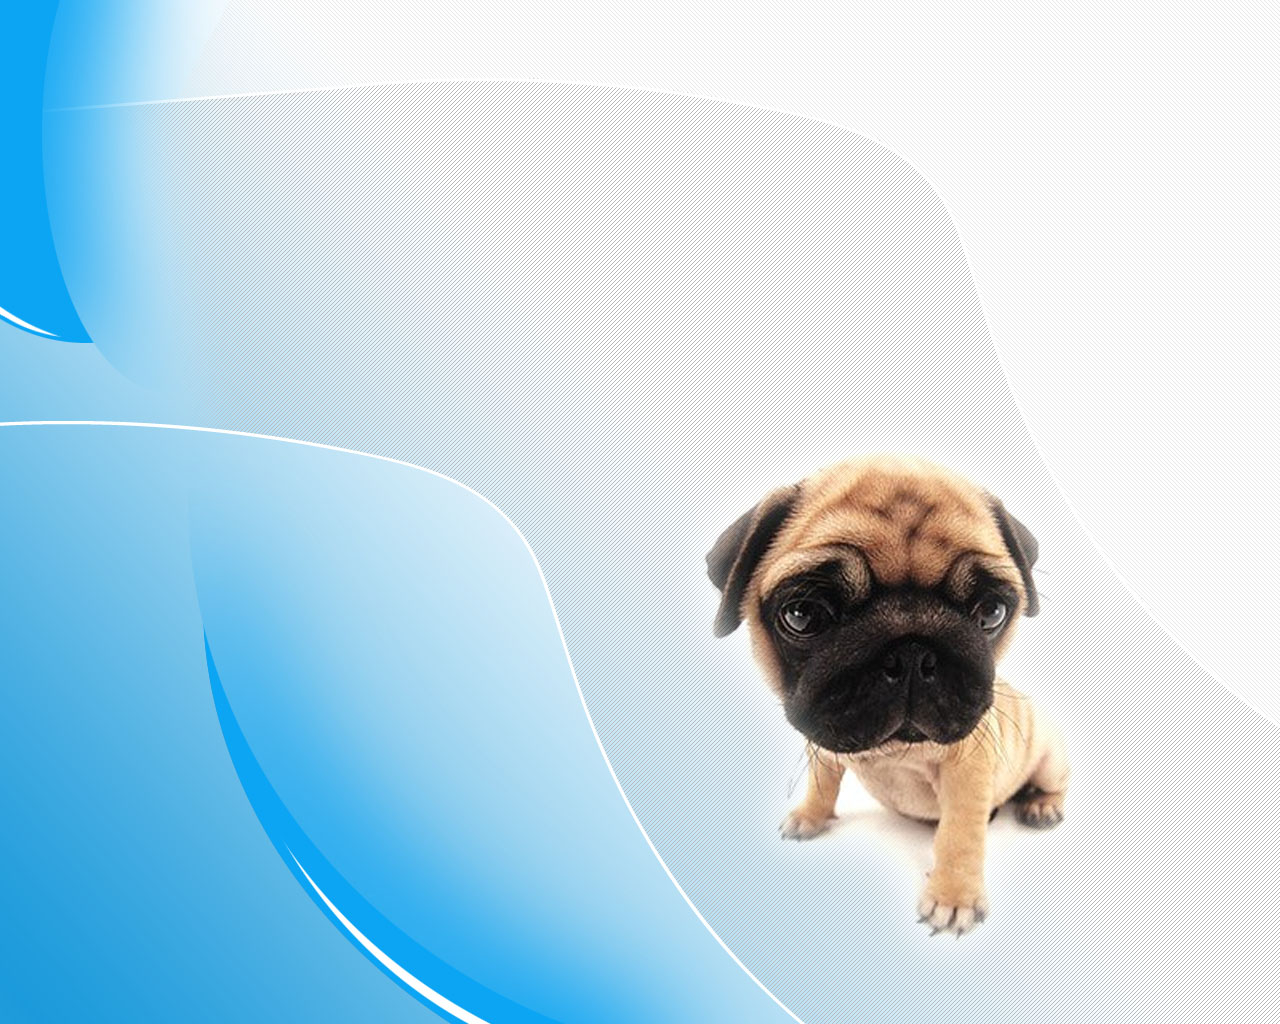 Pug Wallpaper For Computer